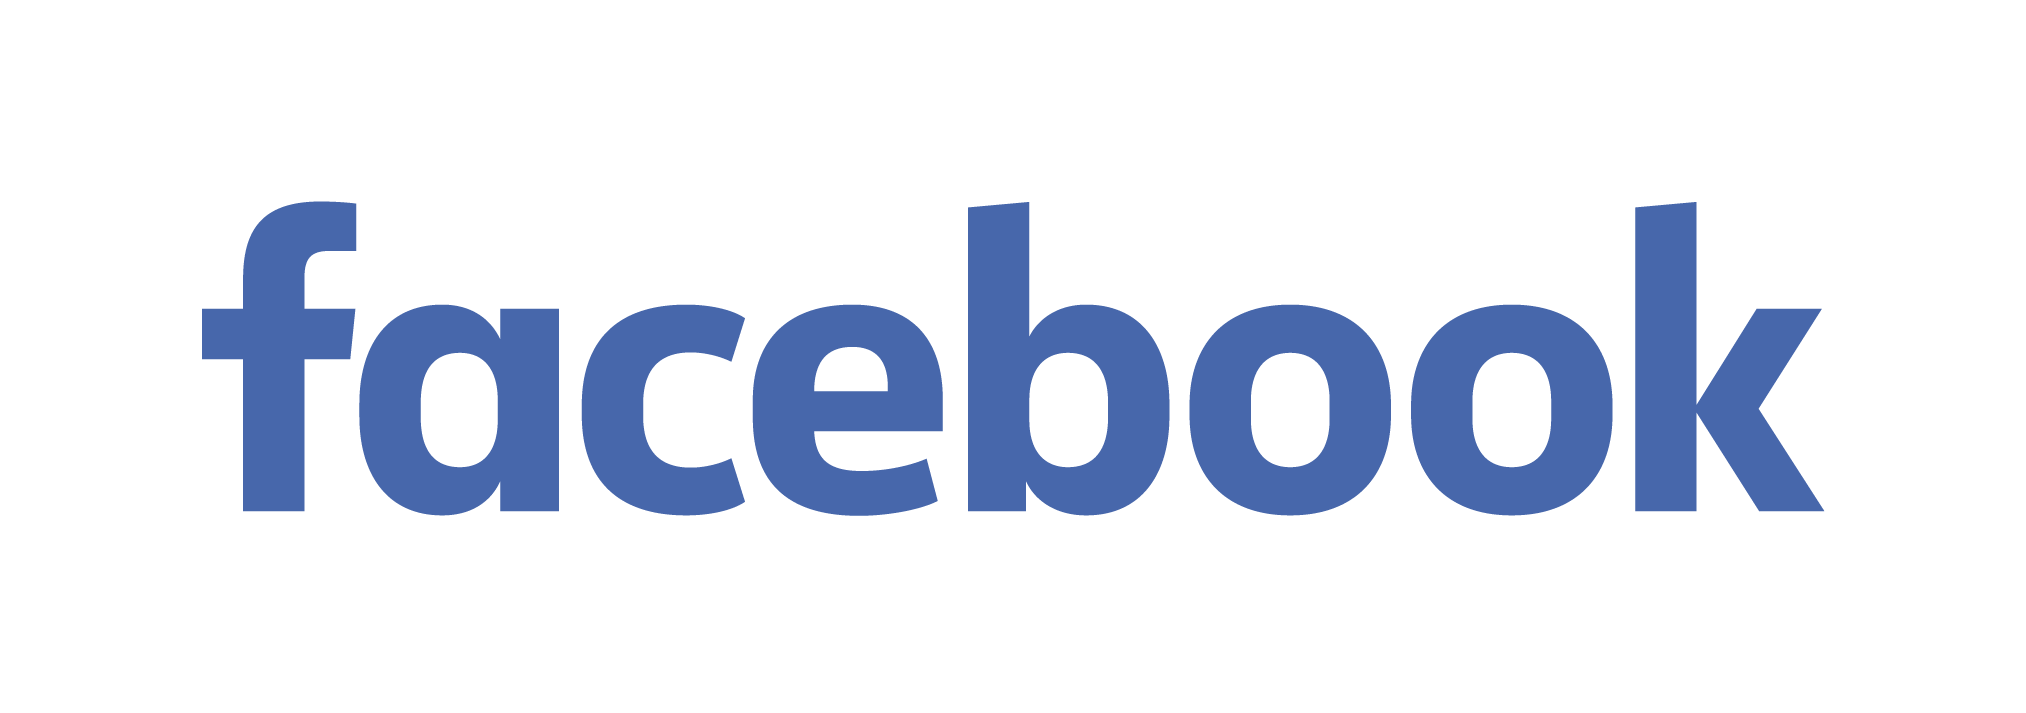 Facebook-06-2015-Blue-on-White.png